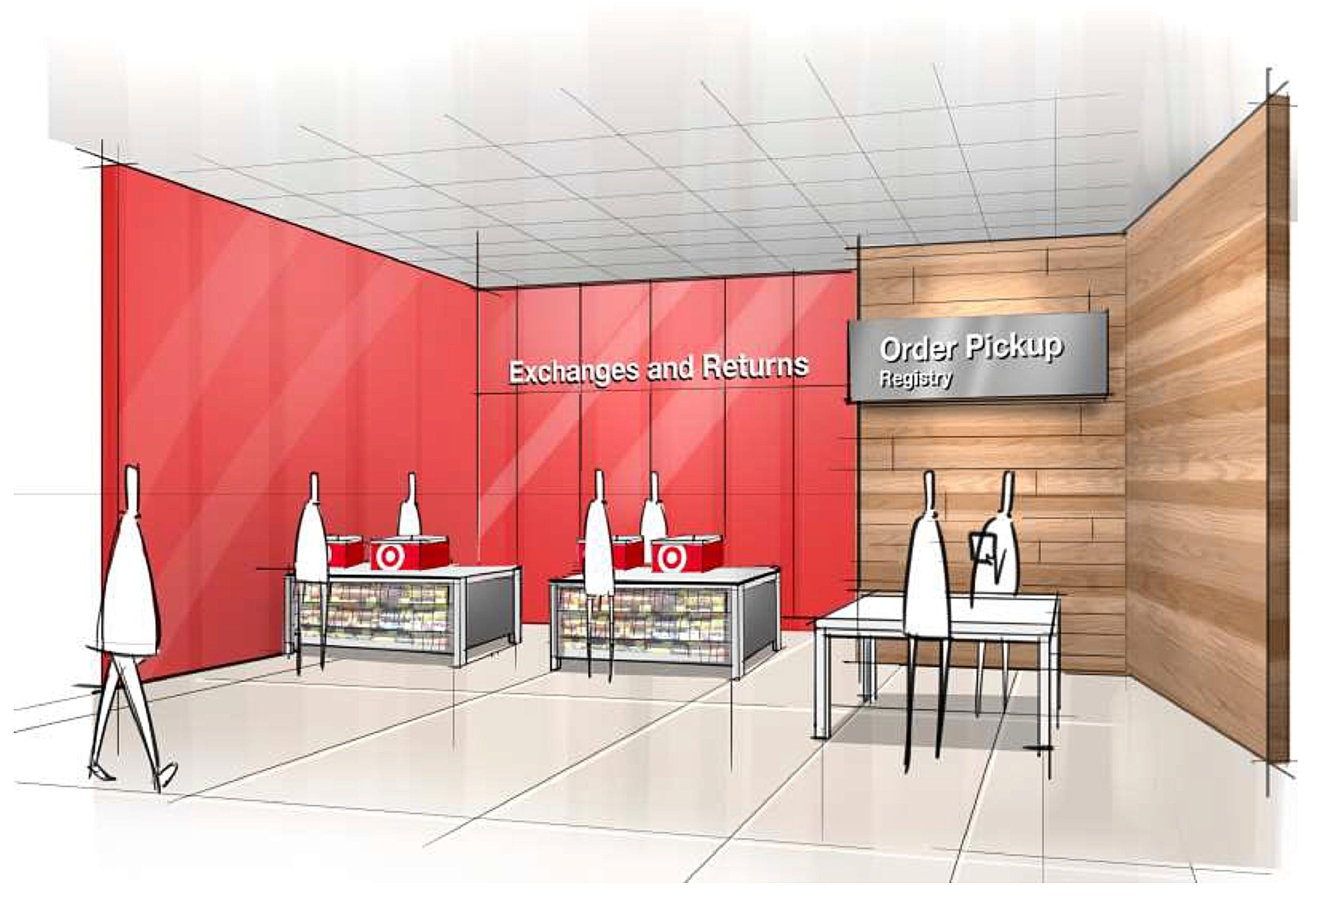 "This image provided by Target Corp. shows a rendering of an area of a redesigned Target store, featuring an ""ease"" entrance to the Exchange/Returns and Order Pickup sections of the store. On Monday, March 20, 2017, Target announced an ambitious redesign of its stores, aimed at helping people who need to dash in for essentials to get out quickly while encouraging those who want to wander the aisles to linger. (Target Corp. via AP)"